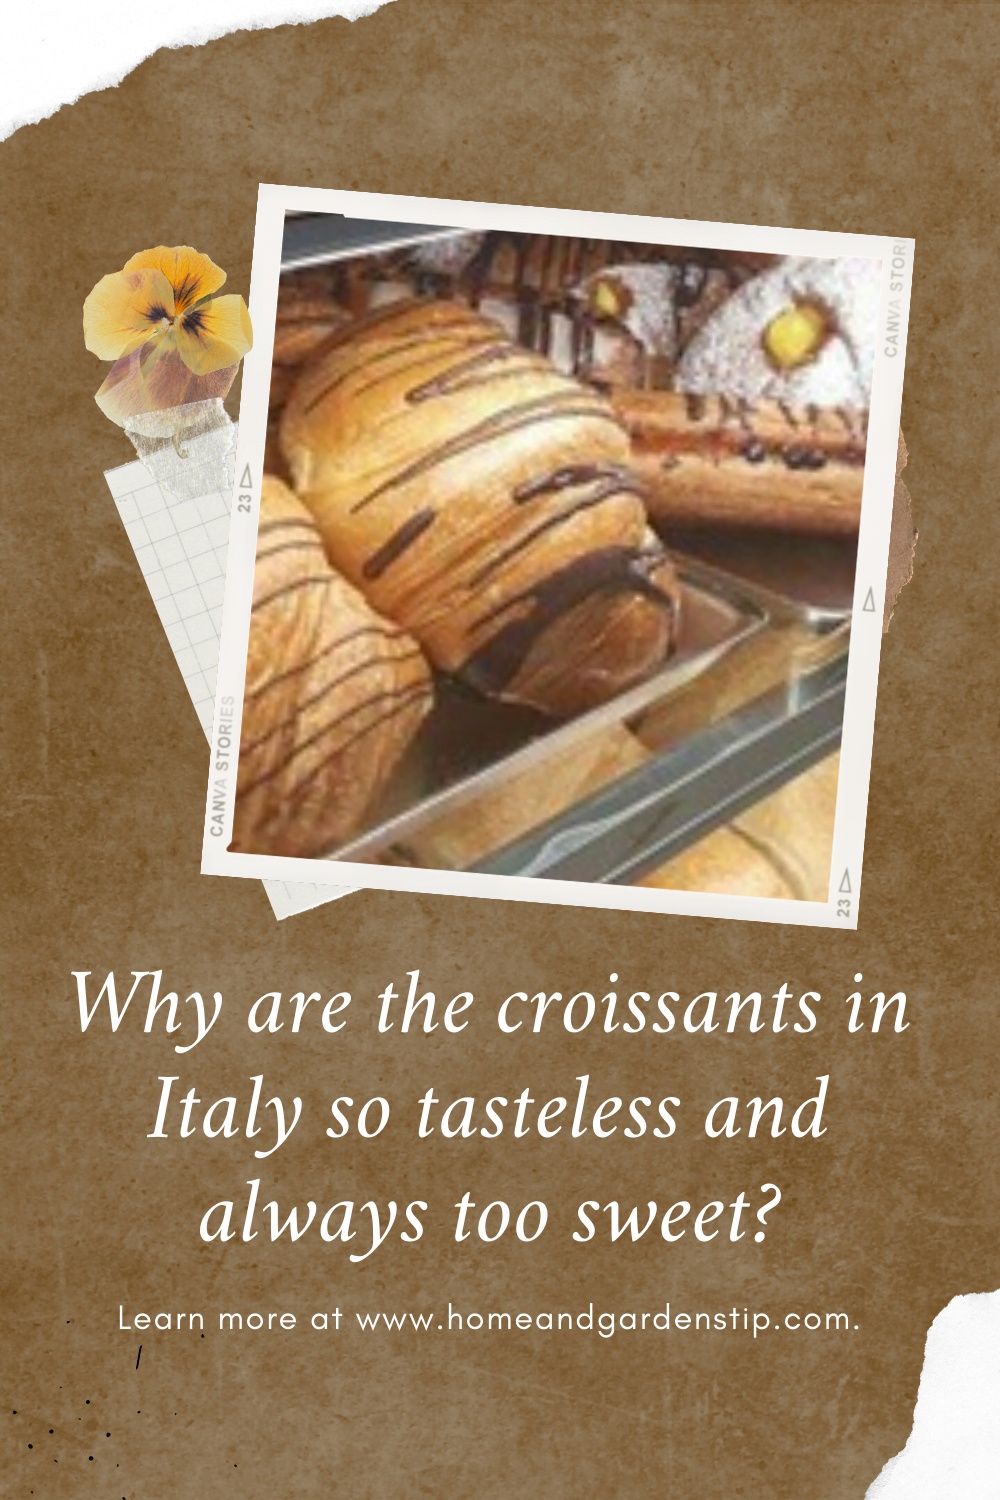 Why are the croissants in Italy so tasteless and always too sweet?